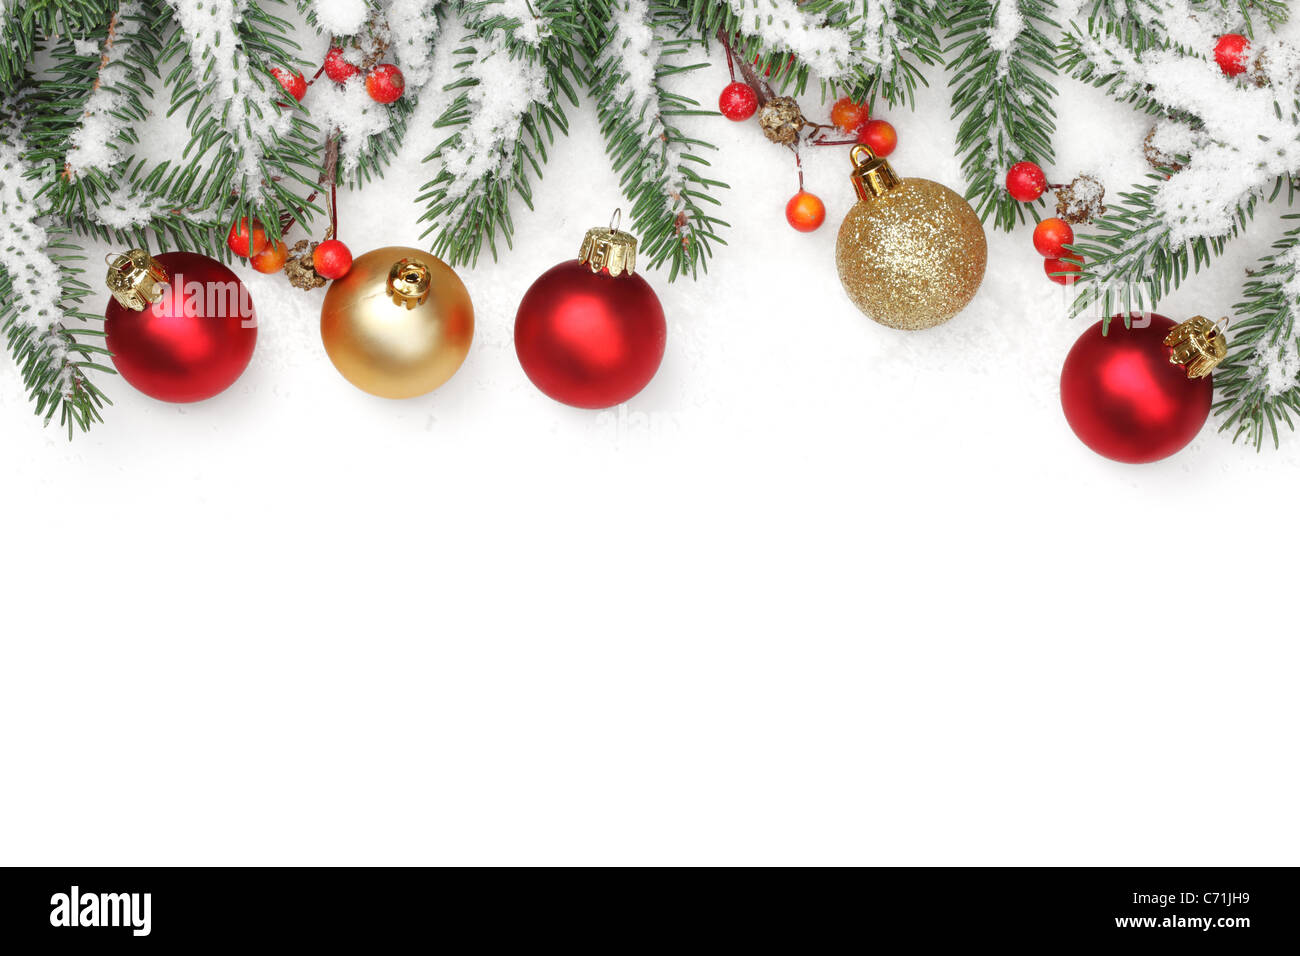 Christmas ornaments in the snowflakes. - Stock Image